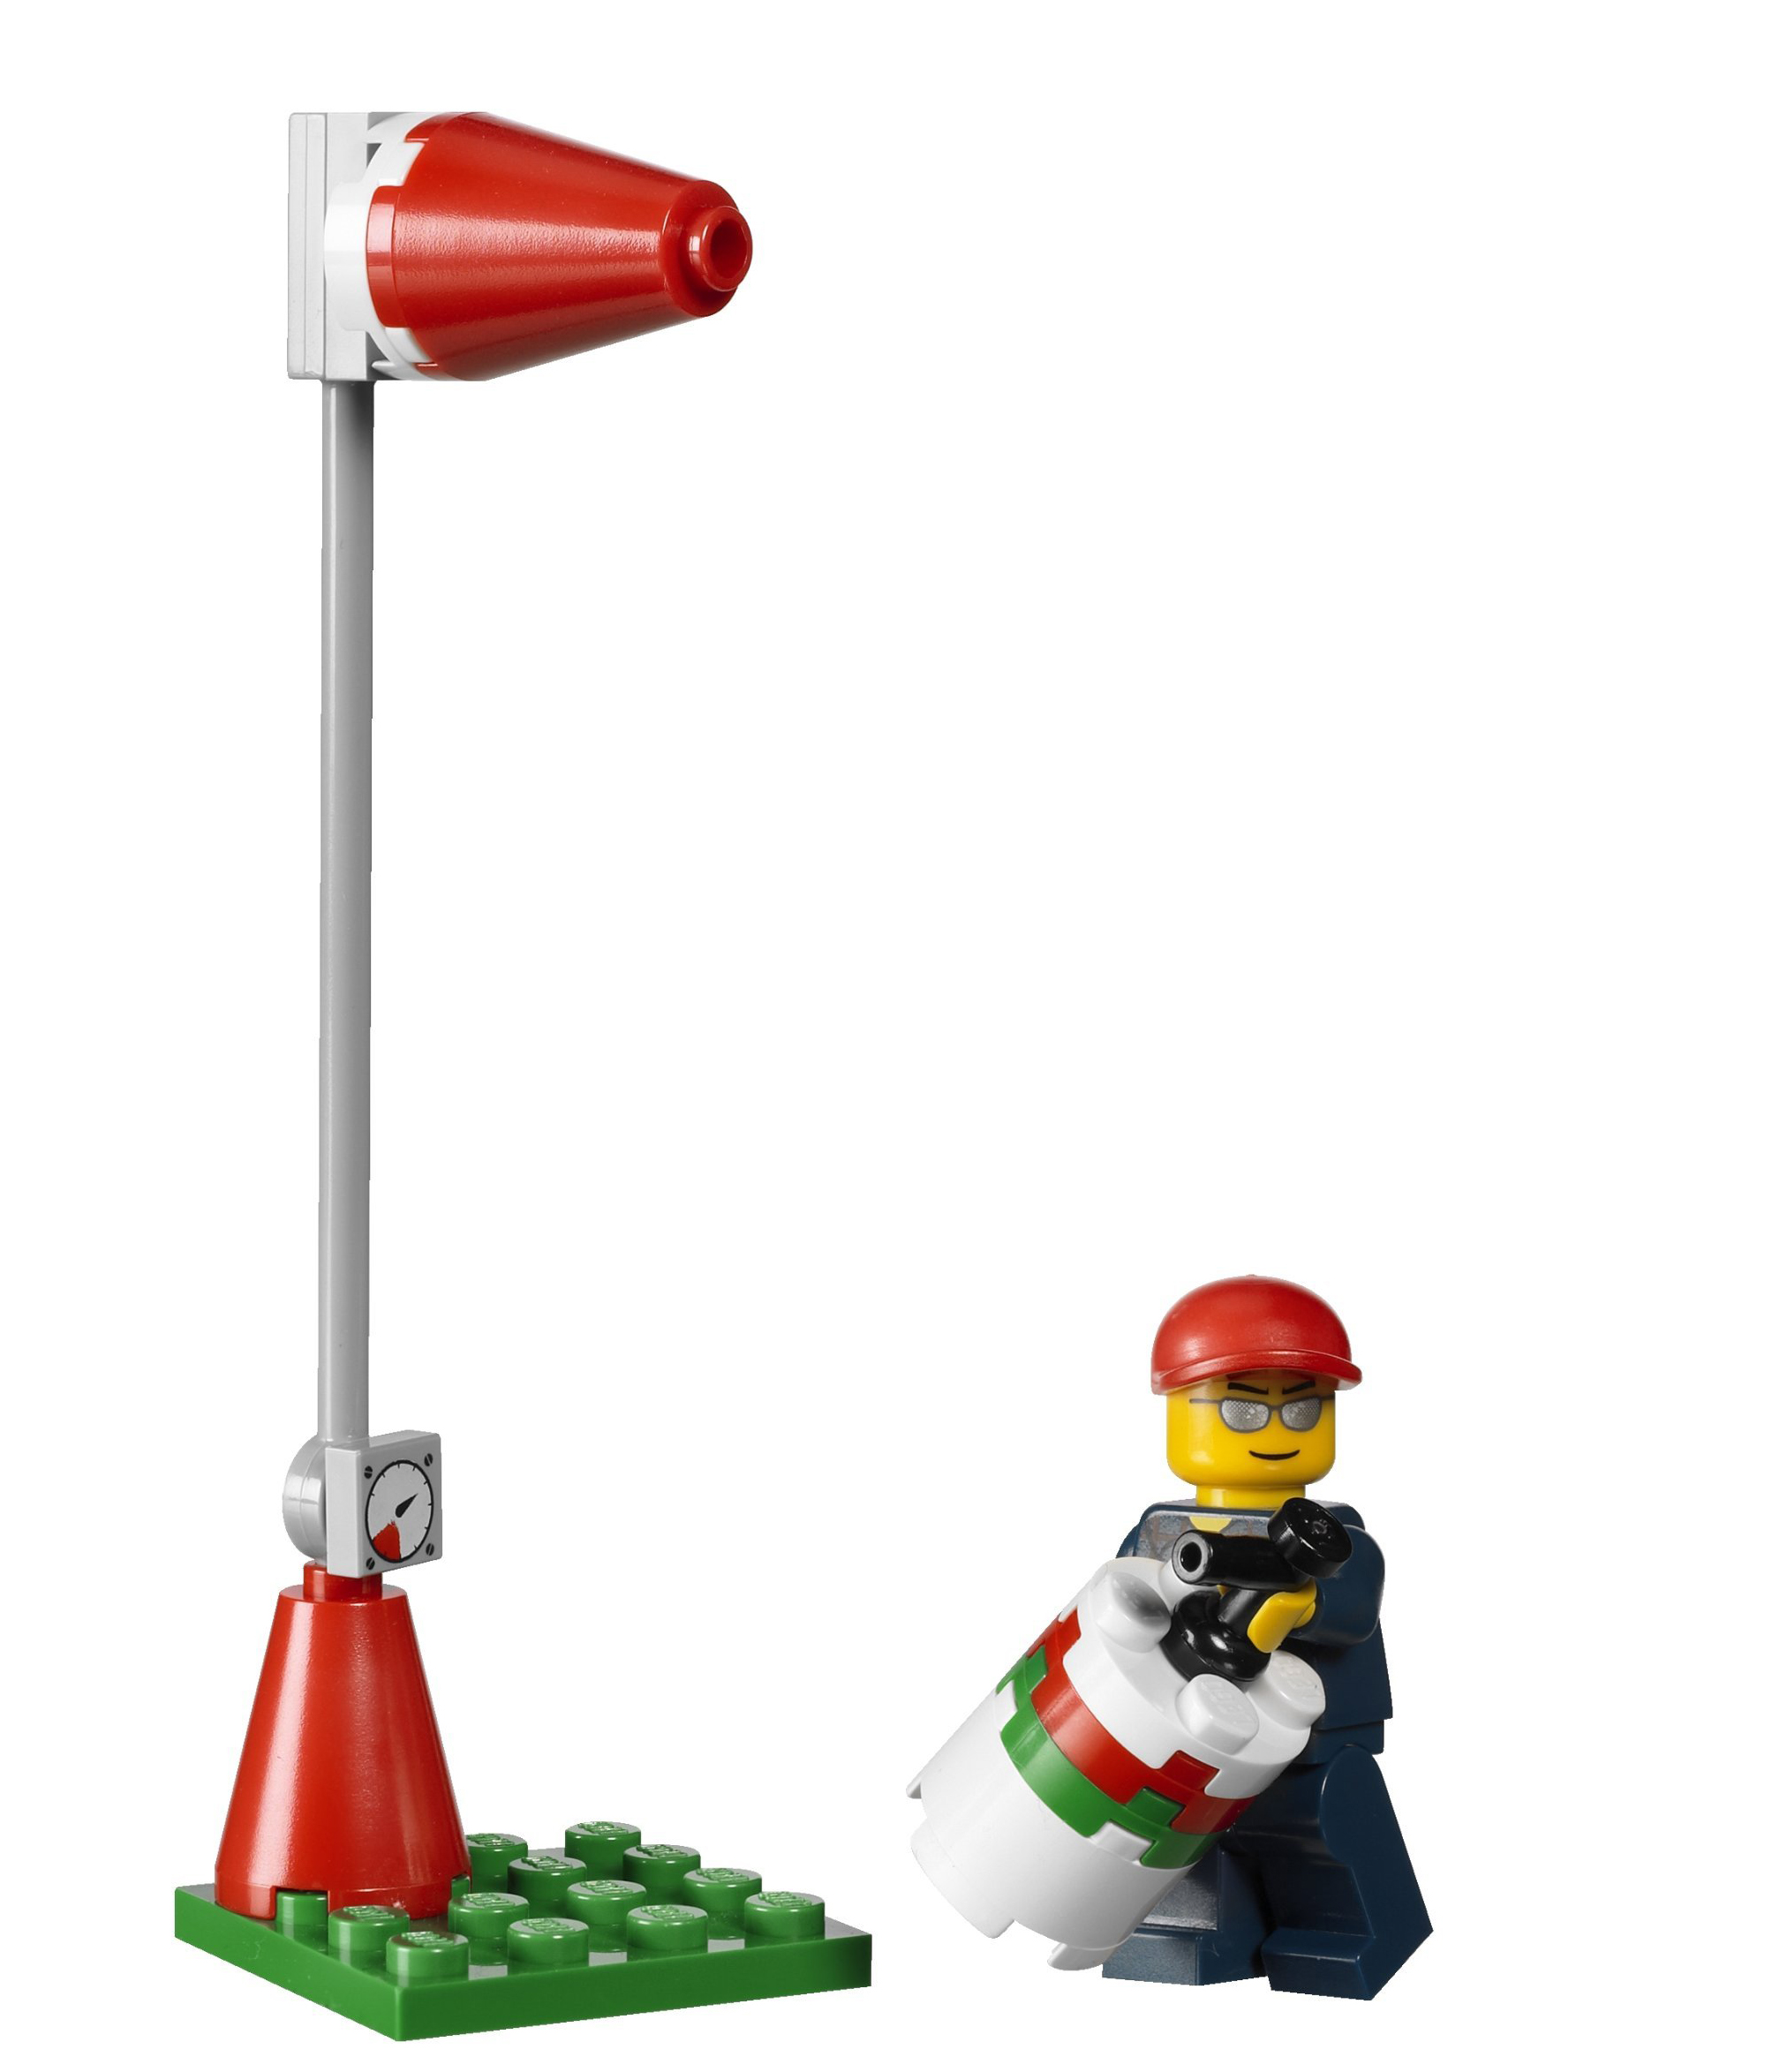 f_3178_minifigure_hr.jpg